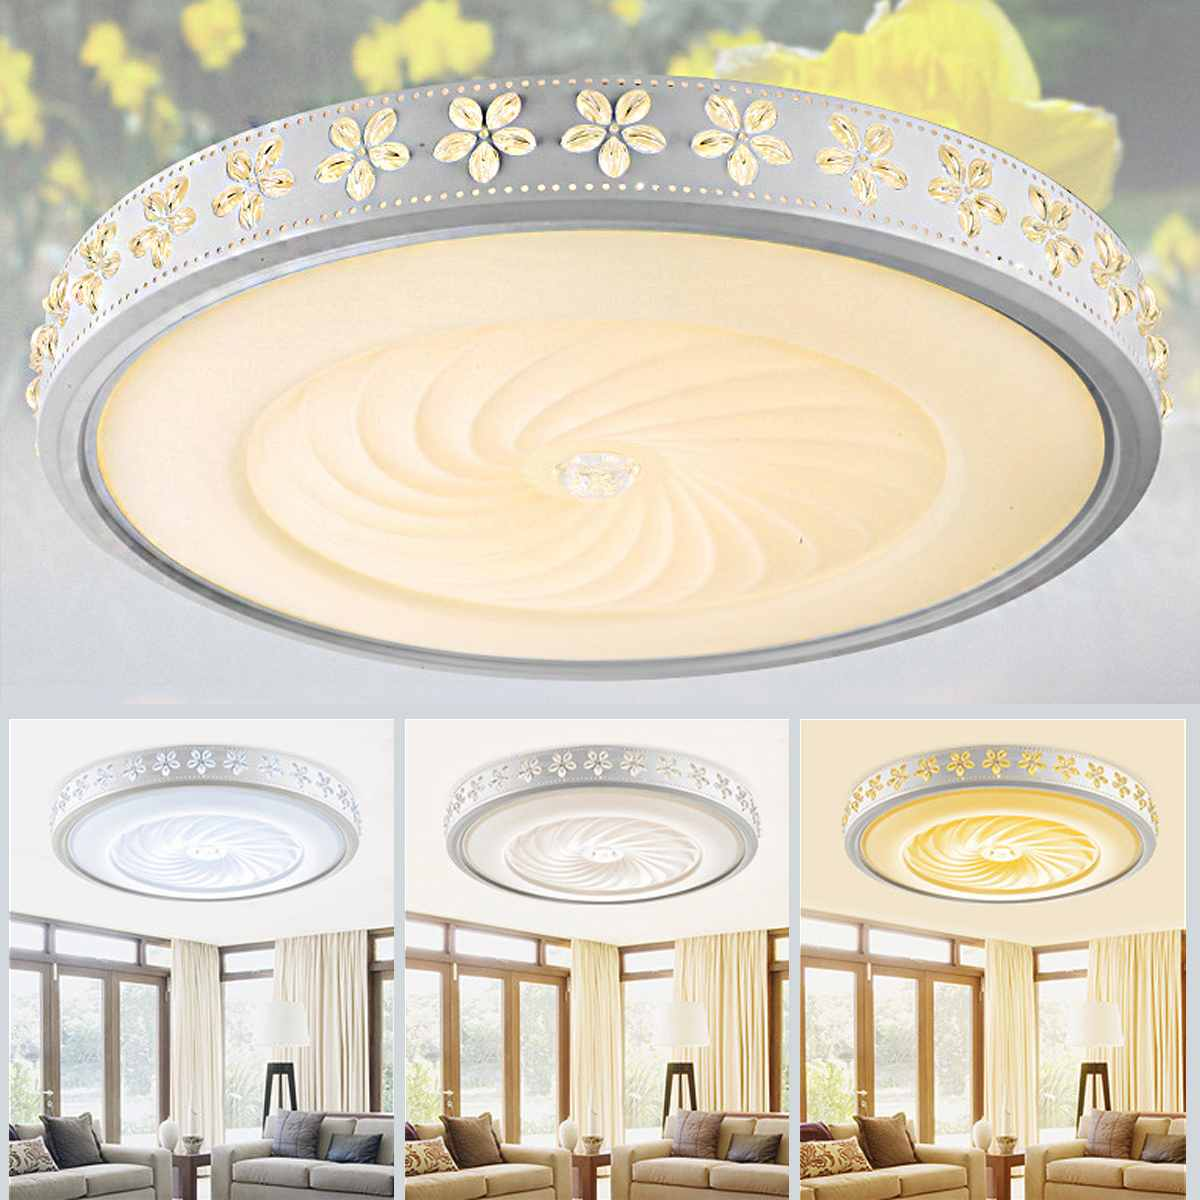 24W 3 Colors Dimmable LED Ceiling Lights Modern Ceiling Lamp With Remote Control Light for Living Room Bedroom Decor Lighting24W 3 Colors Dimmable LED Ceiling Lights Modern Ceiling Lamp With Remote Control Light for Living Room Bedroom Decor Lighting